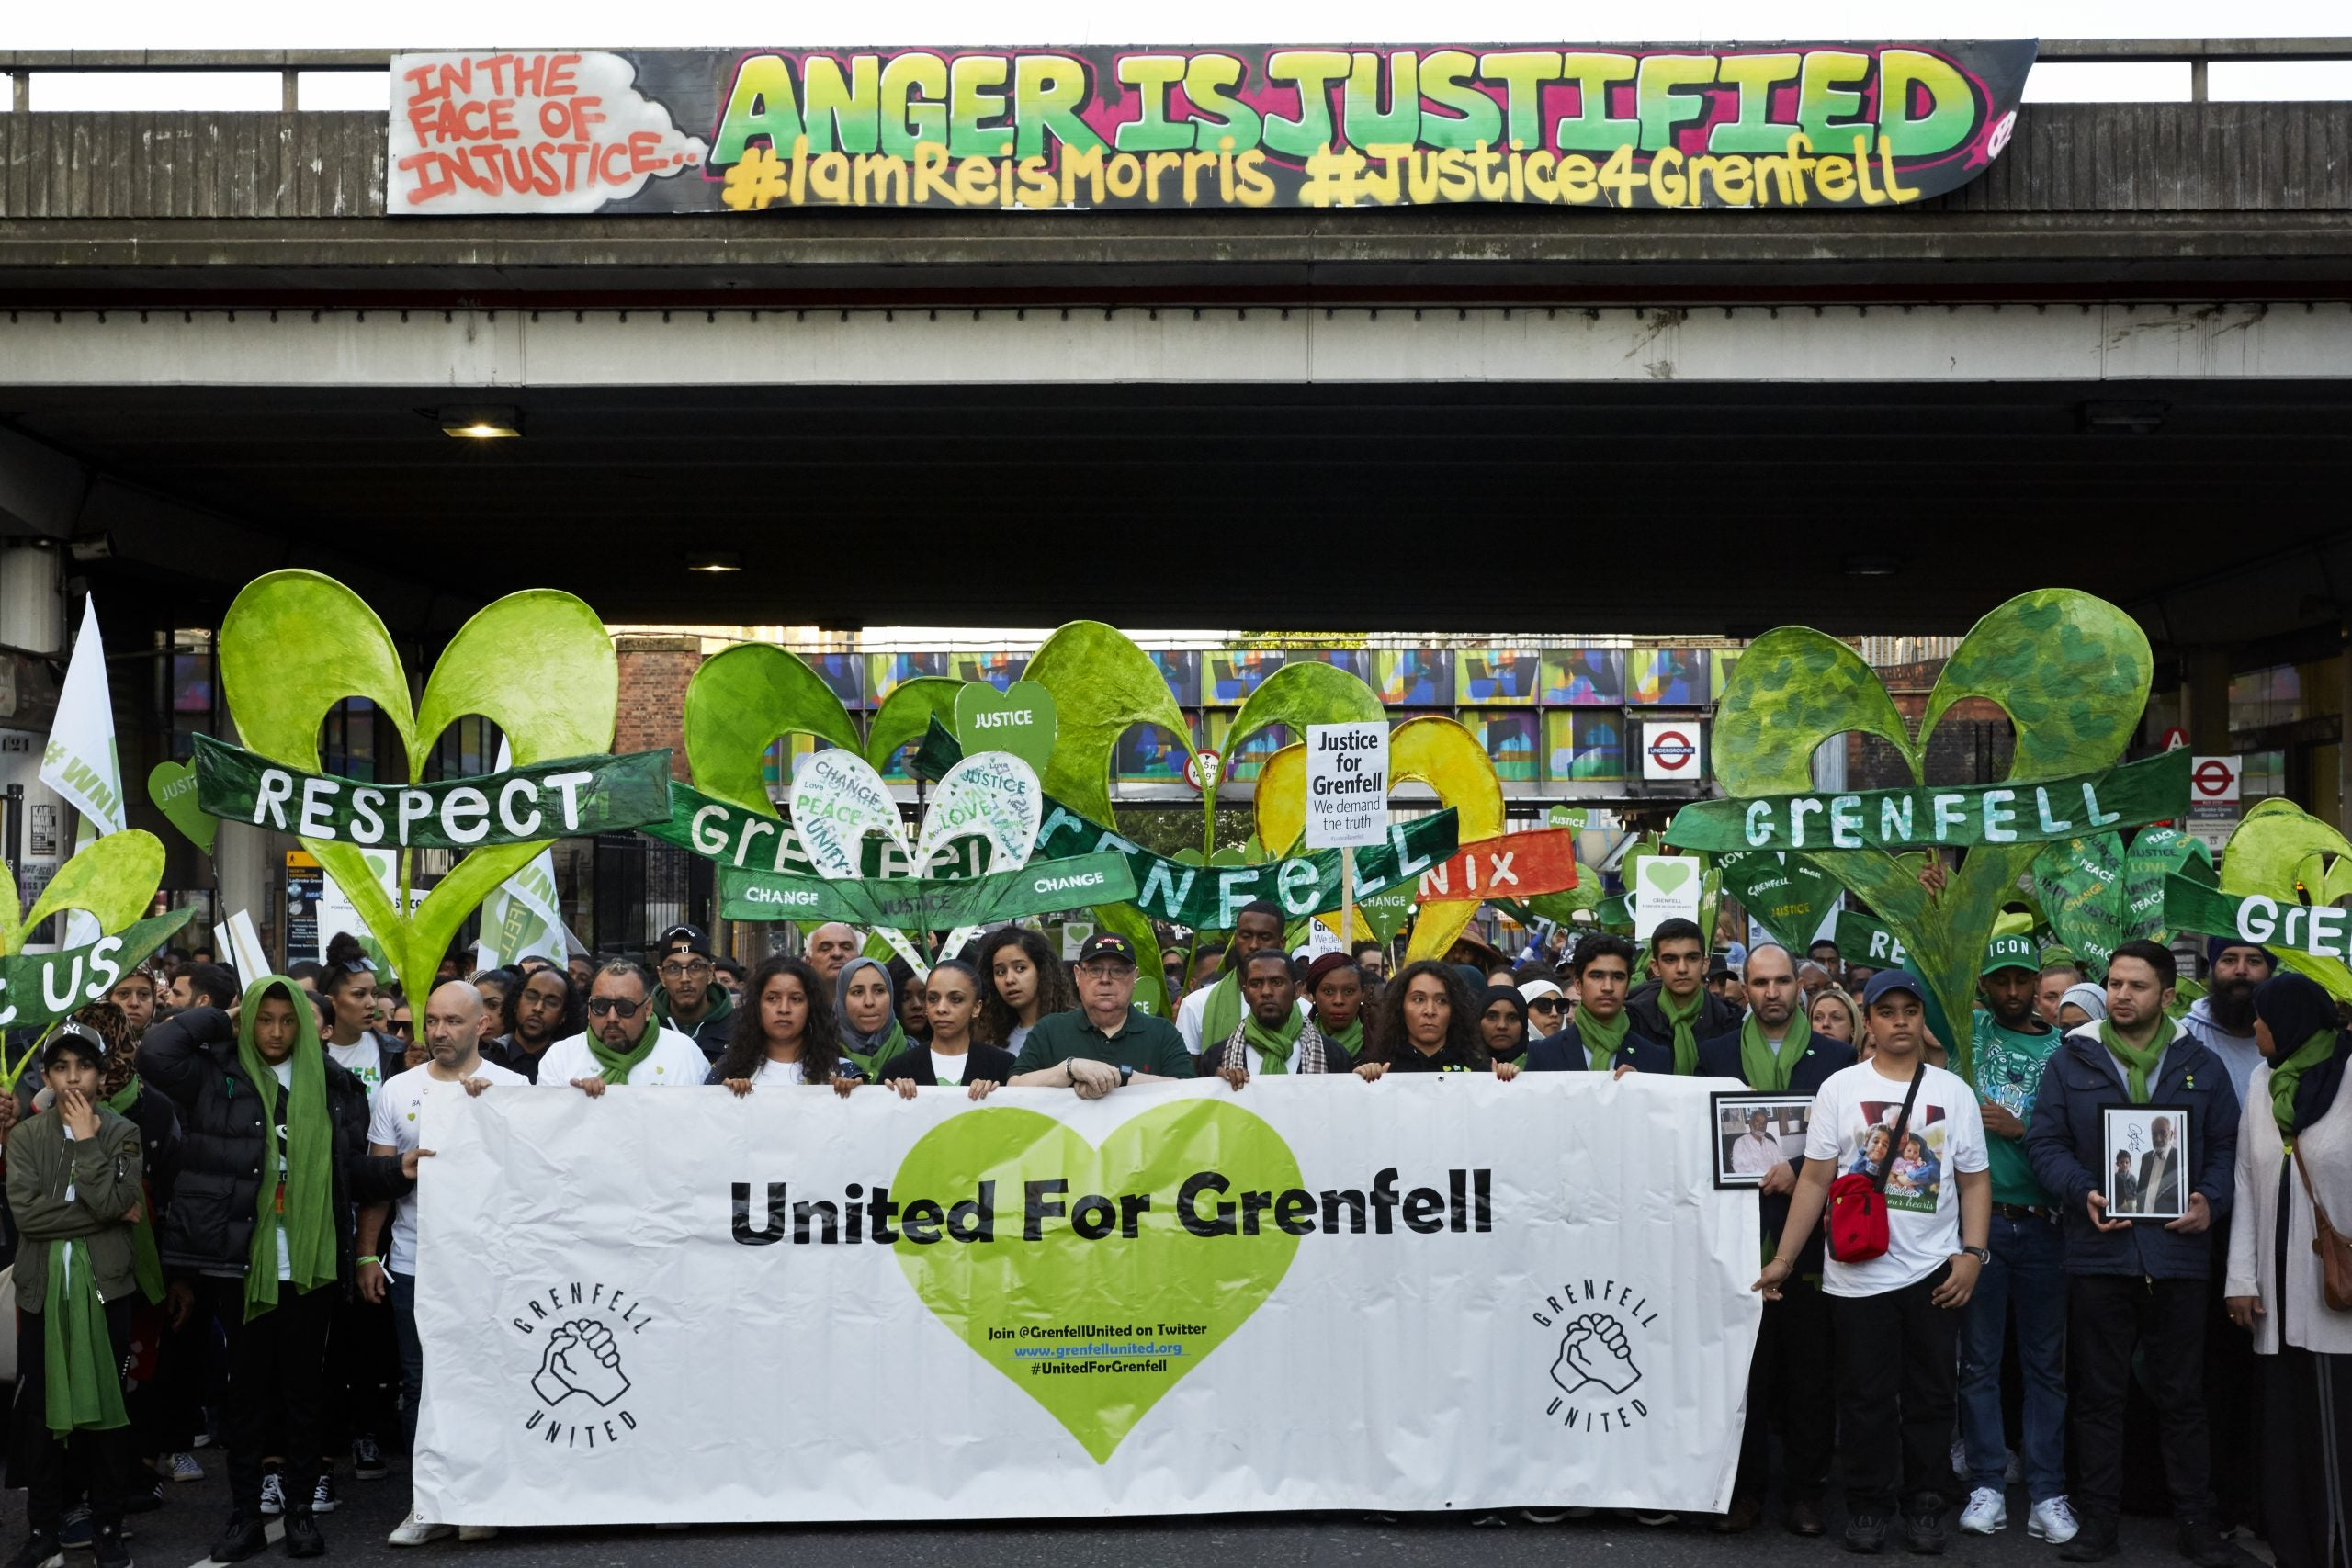 On a Grenfell walk, people want justice as much as commemoration